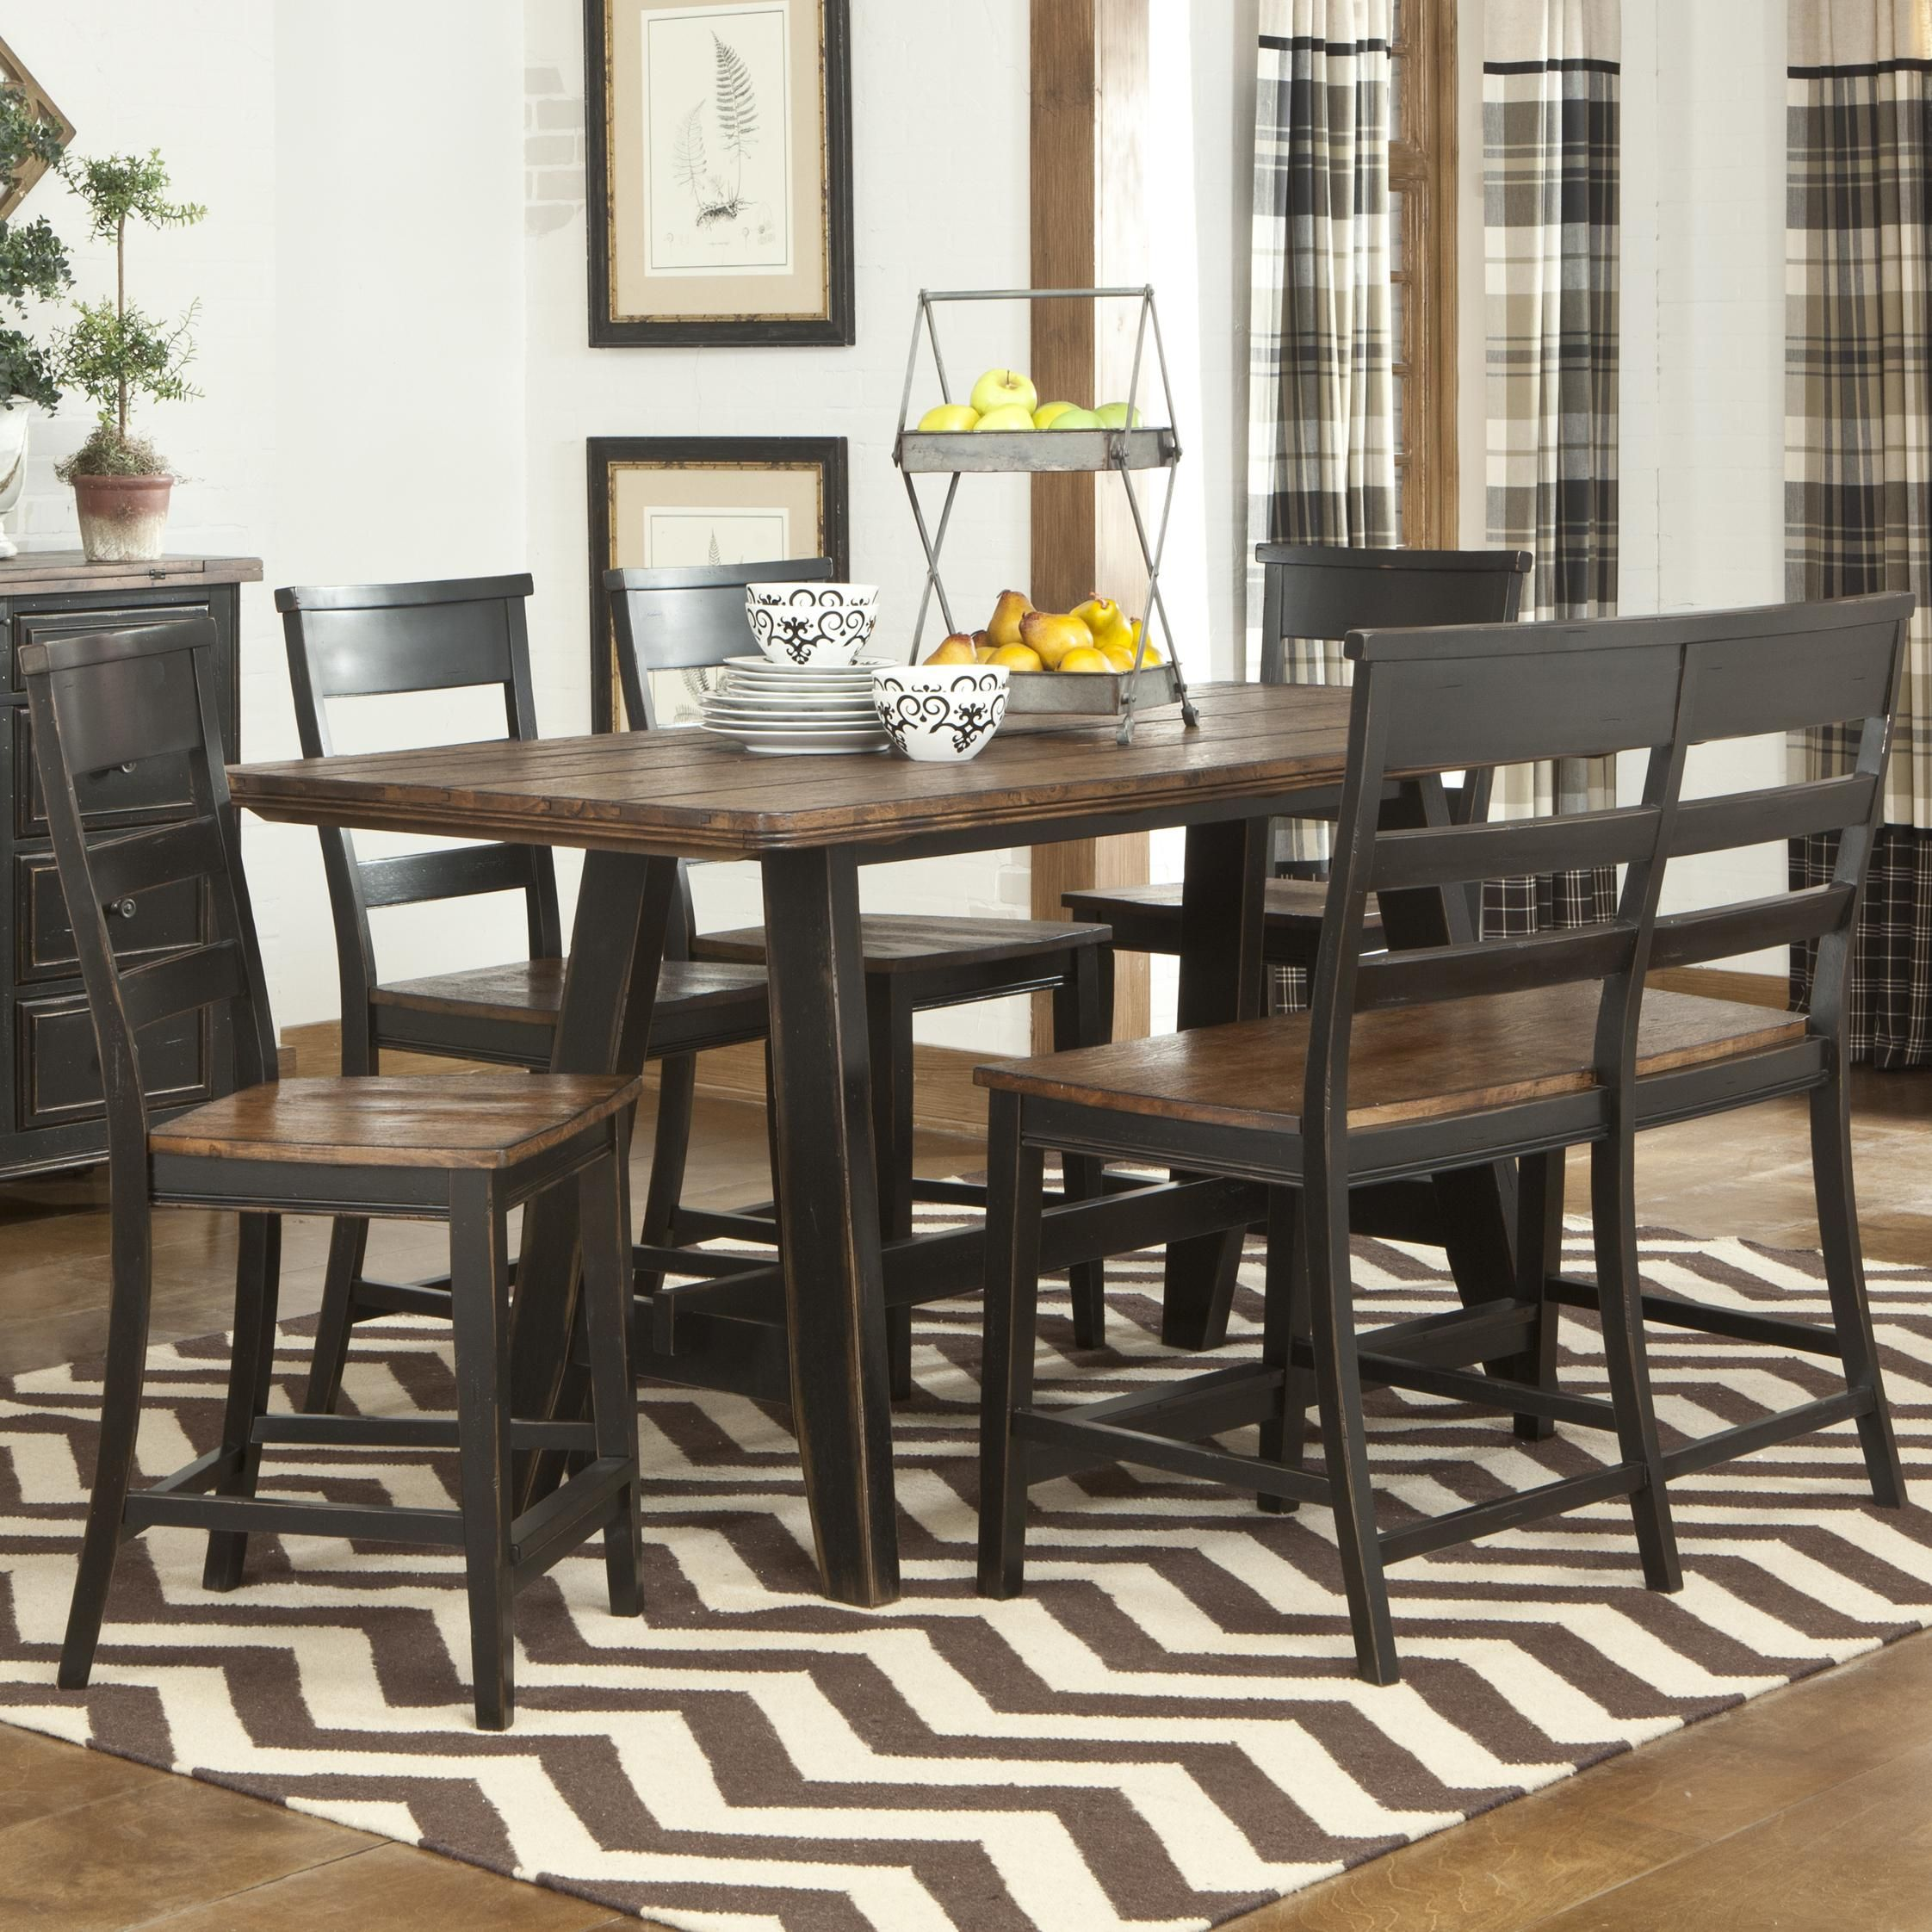 Winchester piece pub set by intercon colders house pinterest